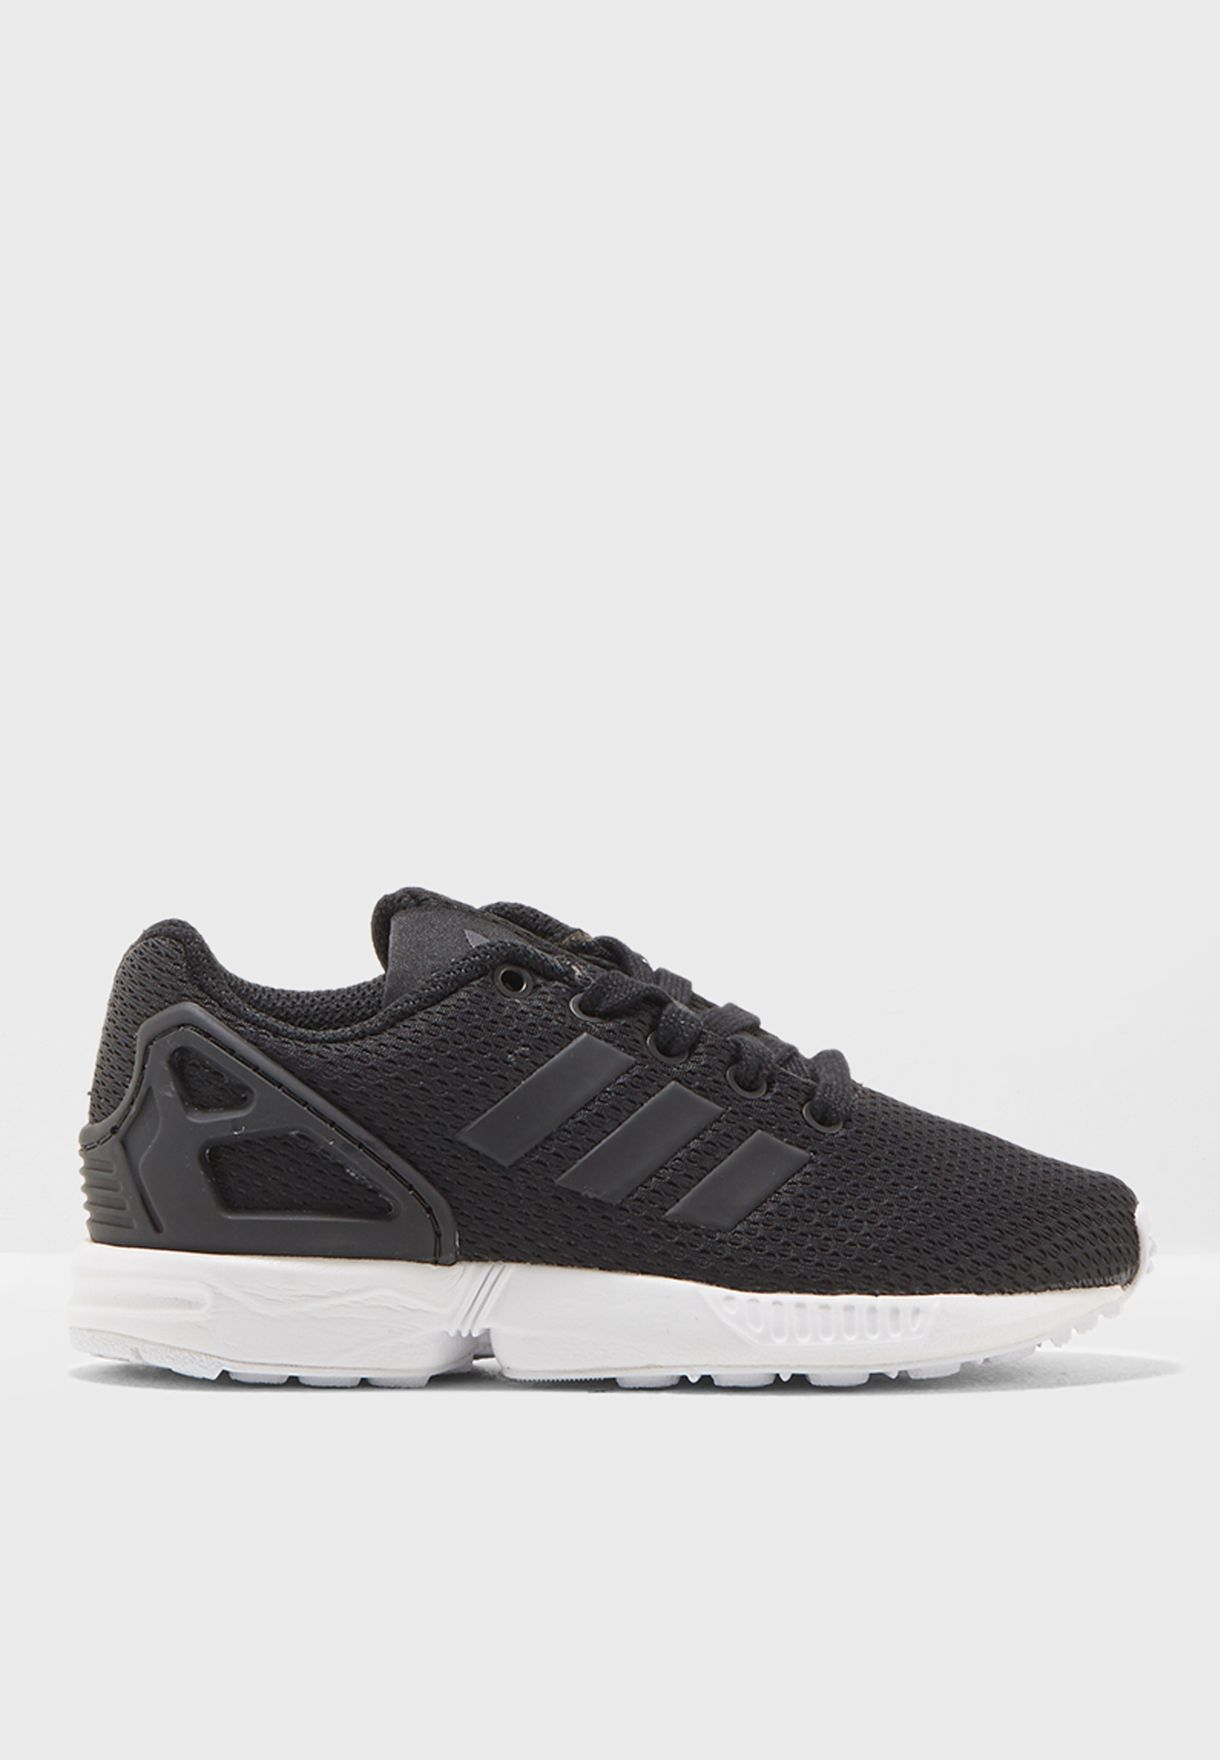 rival Comerciante crimen  Buy adidas Originals black ZX Flux Casual Kids Sneakers Shoes for Kids in  MENA, Worldwide | M21294